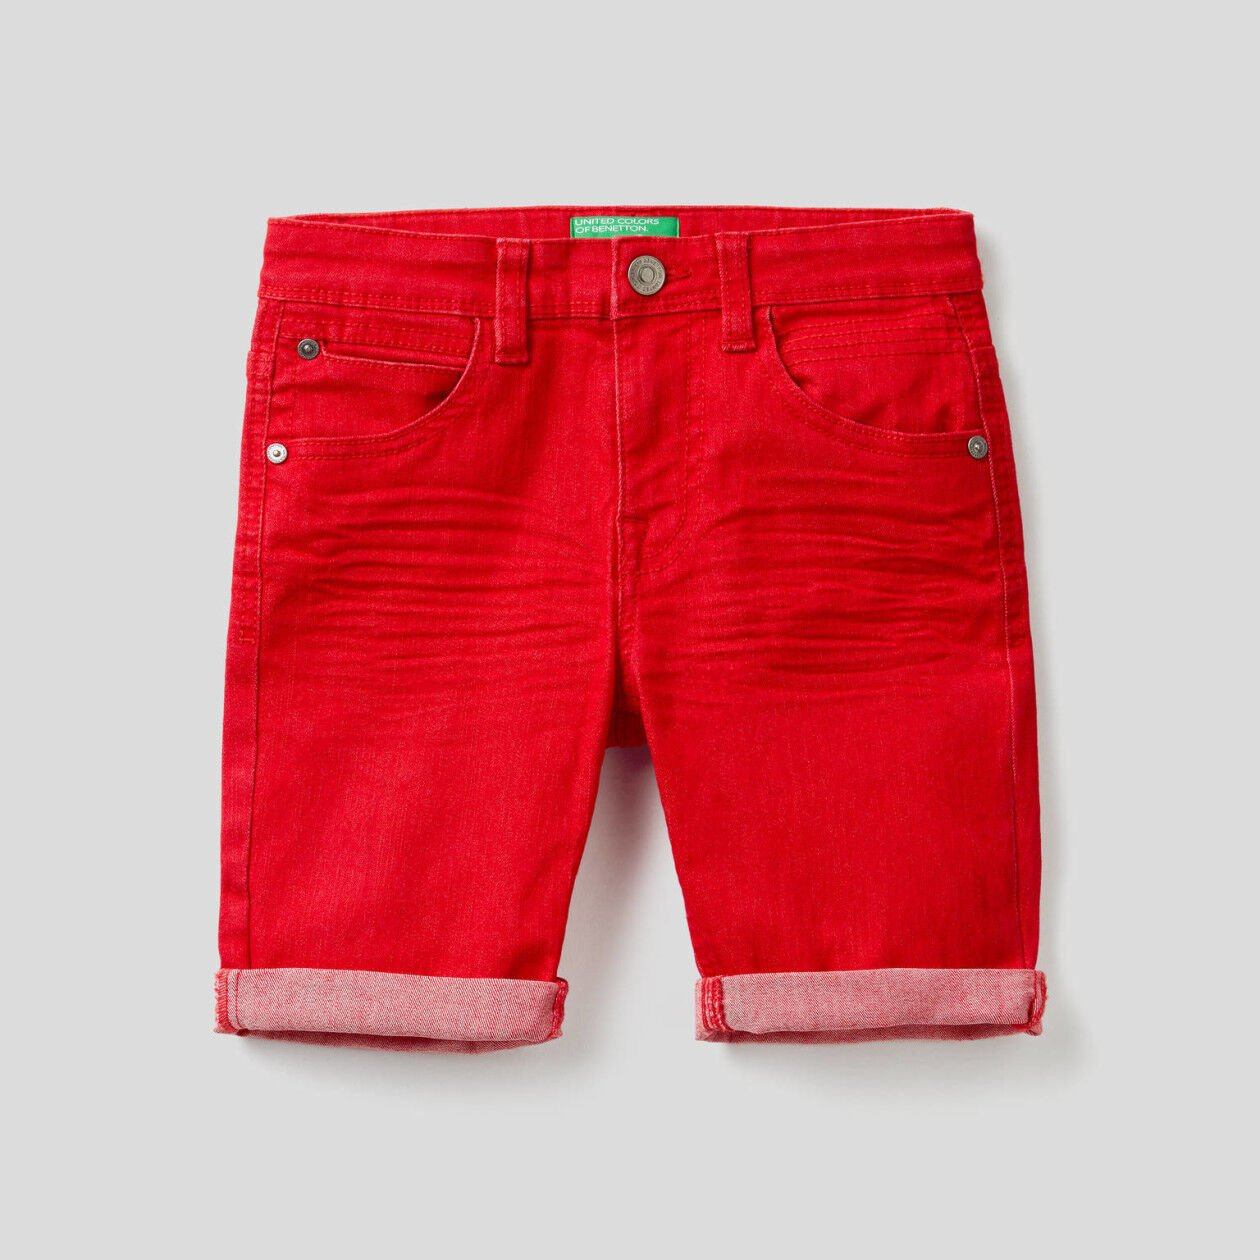 Bermudas slim fit